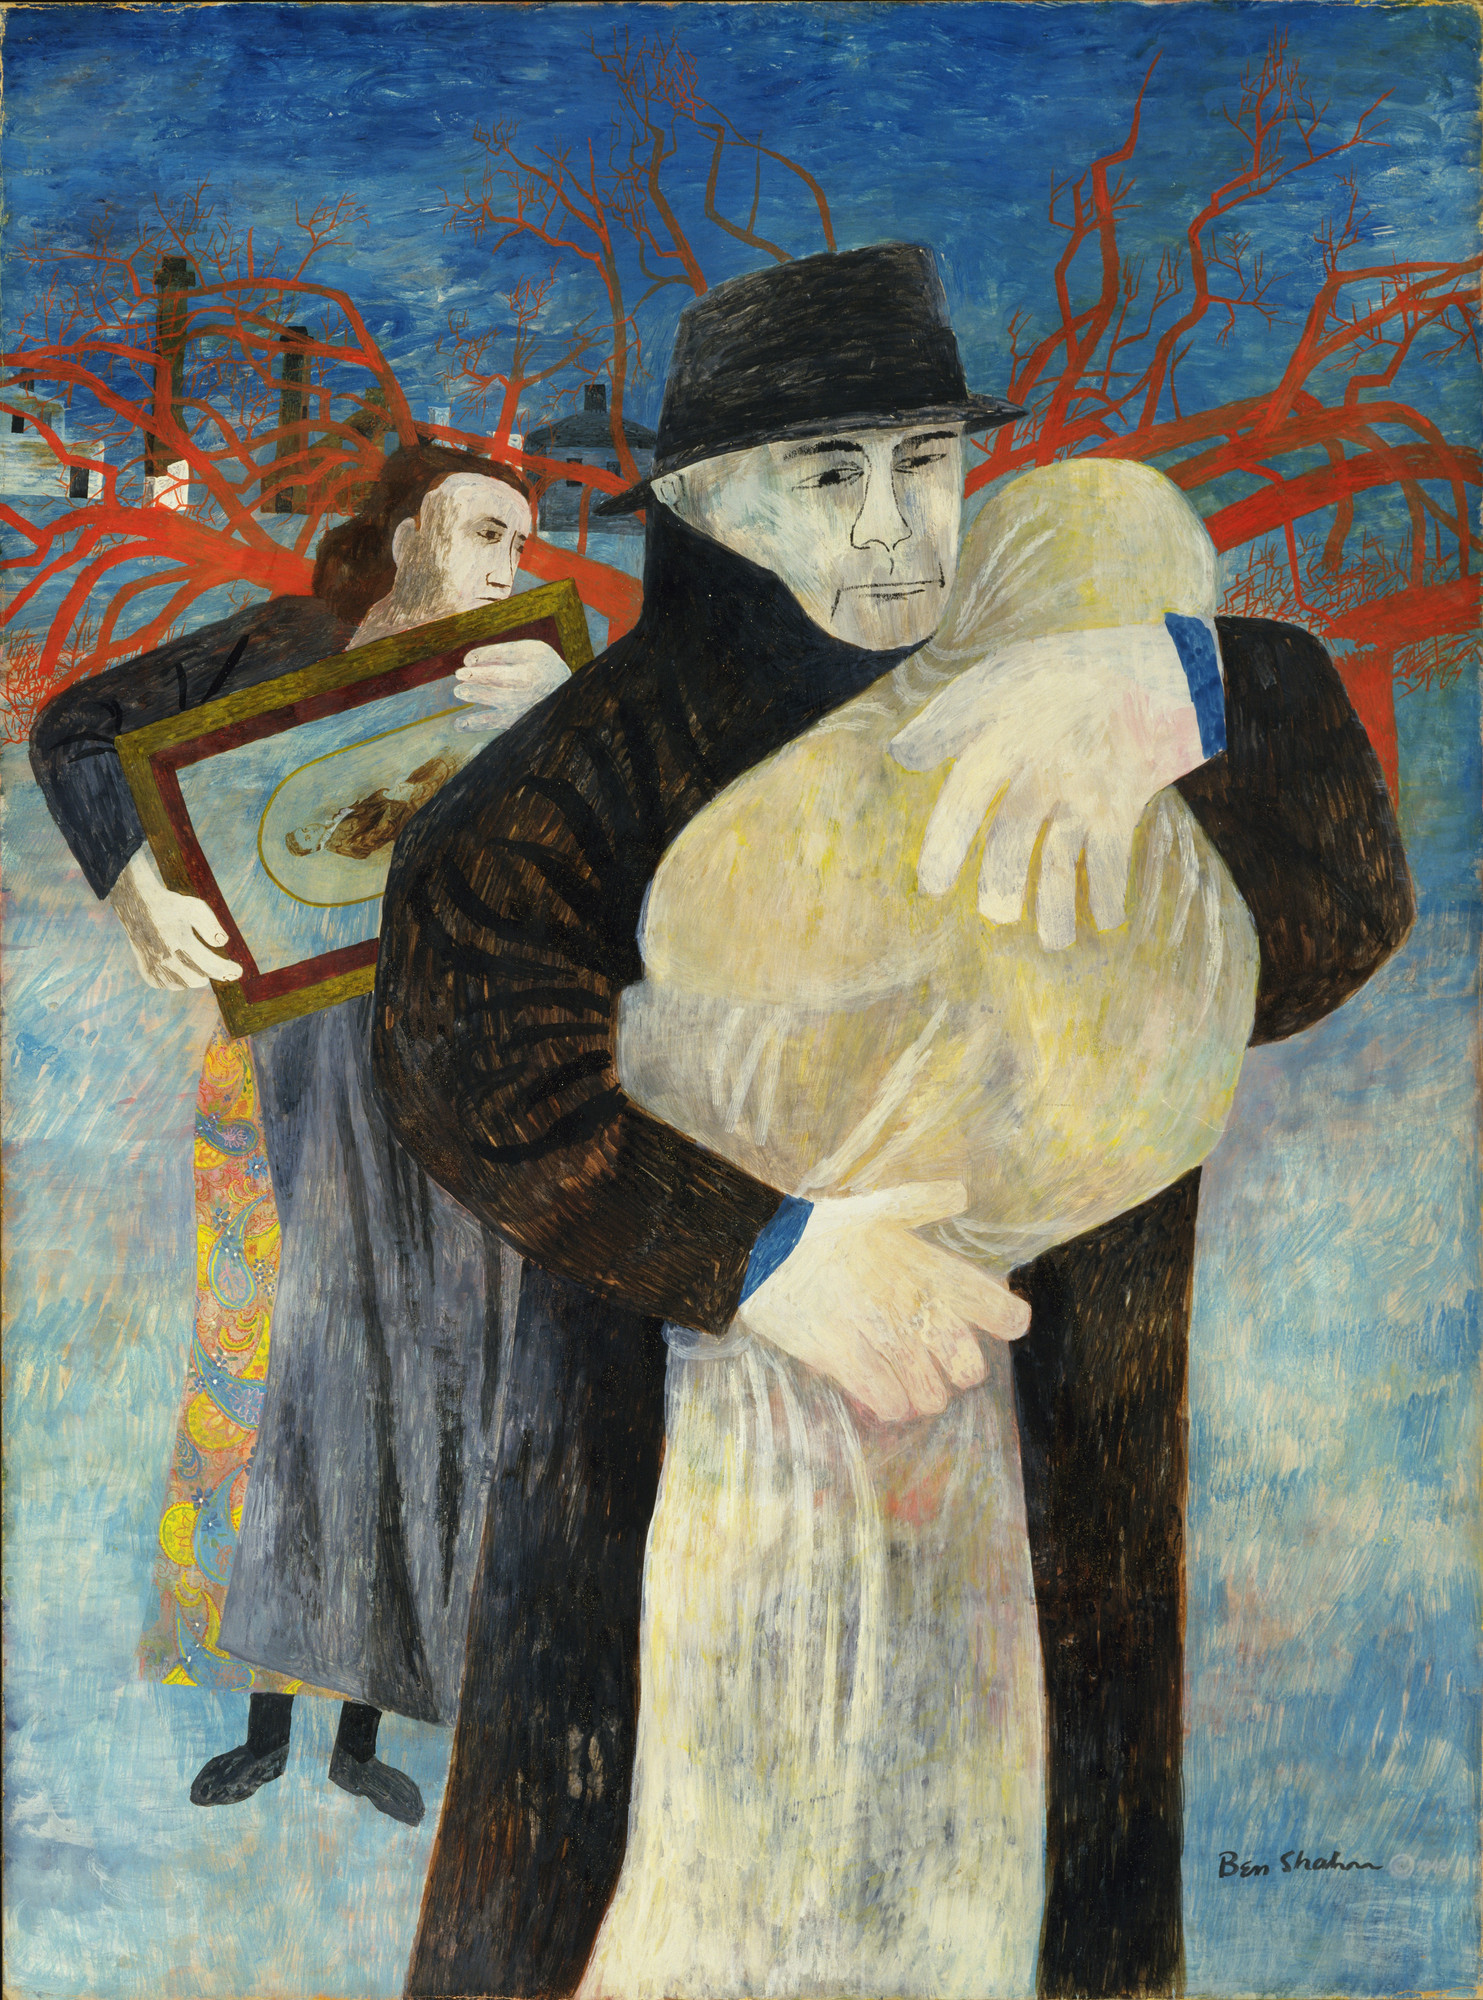 Ben Shahn. Father and Child. 1946